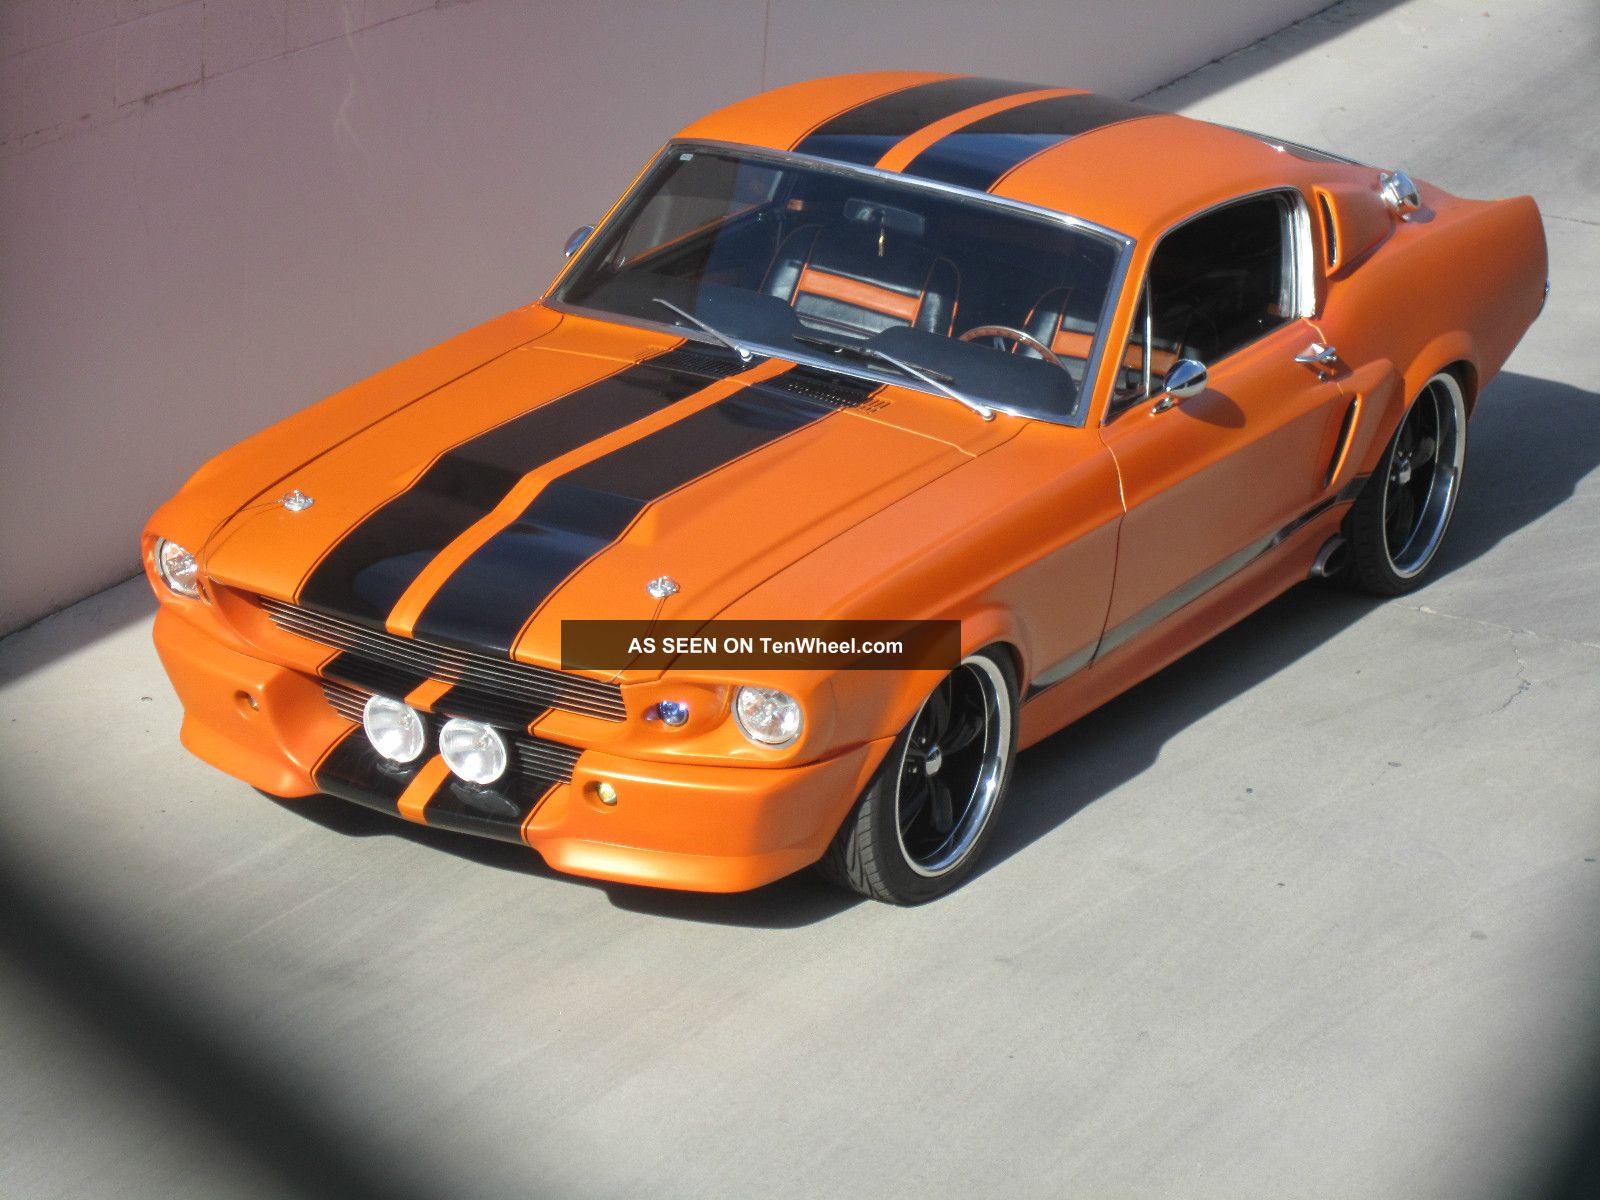 1968 Ford Mustang Fastback Gt500 Eleanor Mustang photo